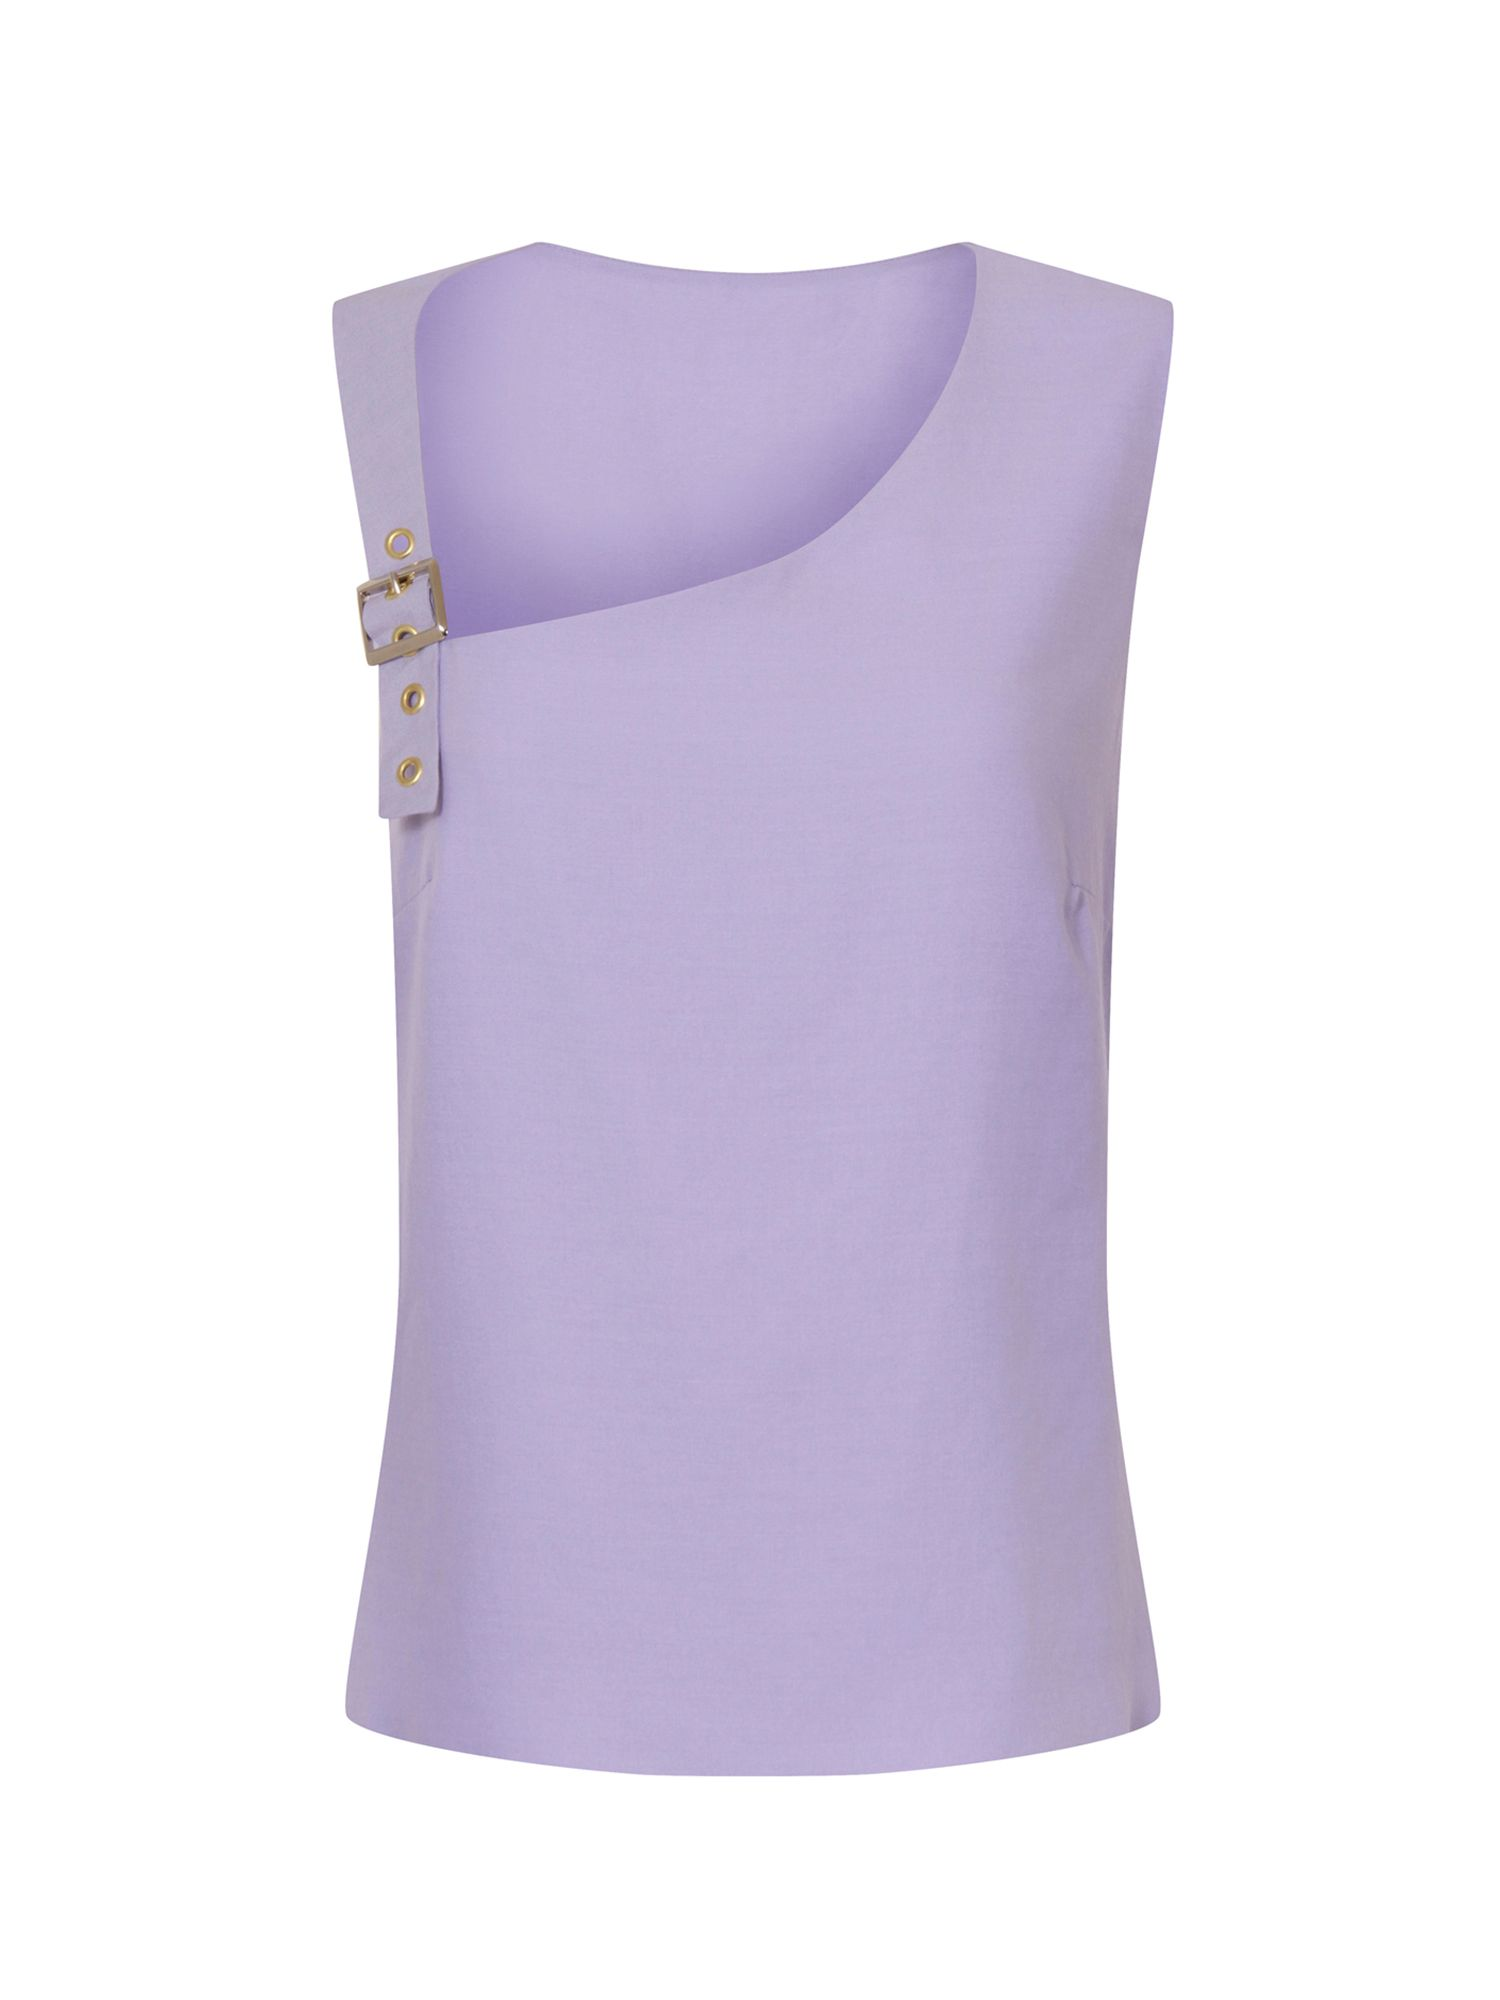 HotSquash Buckle Shoulder Top in CoolFresh Fabric, Lilac